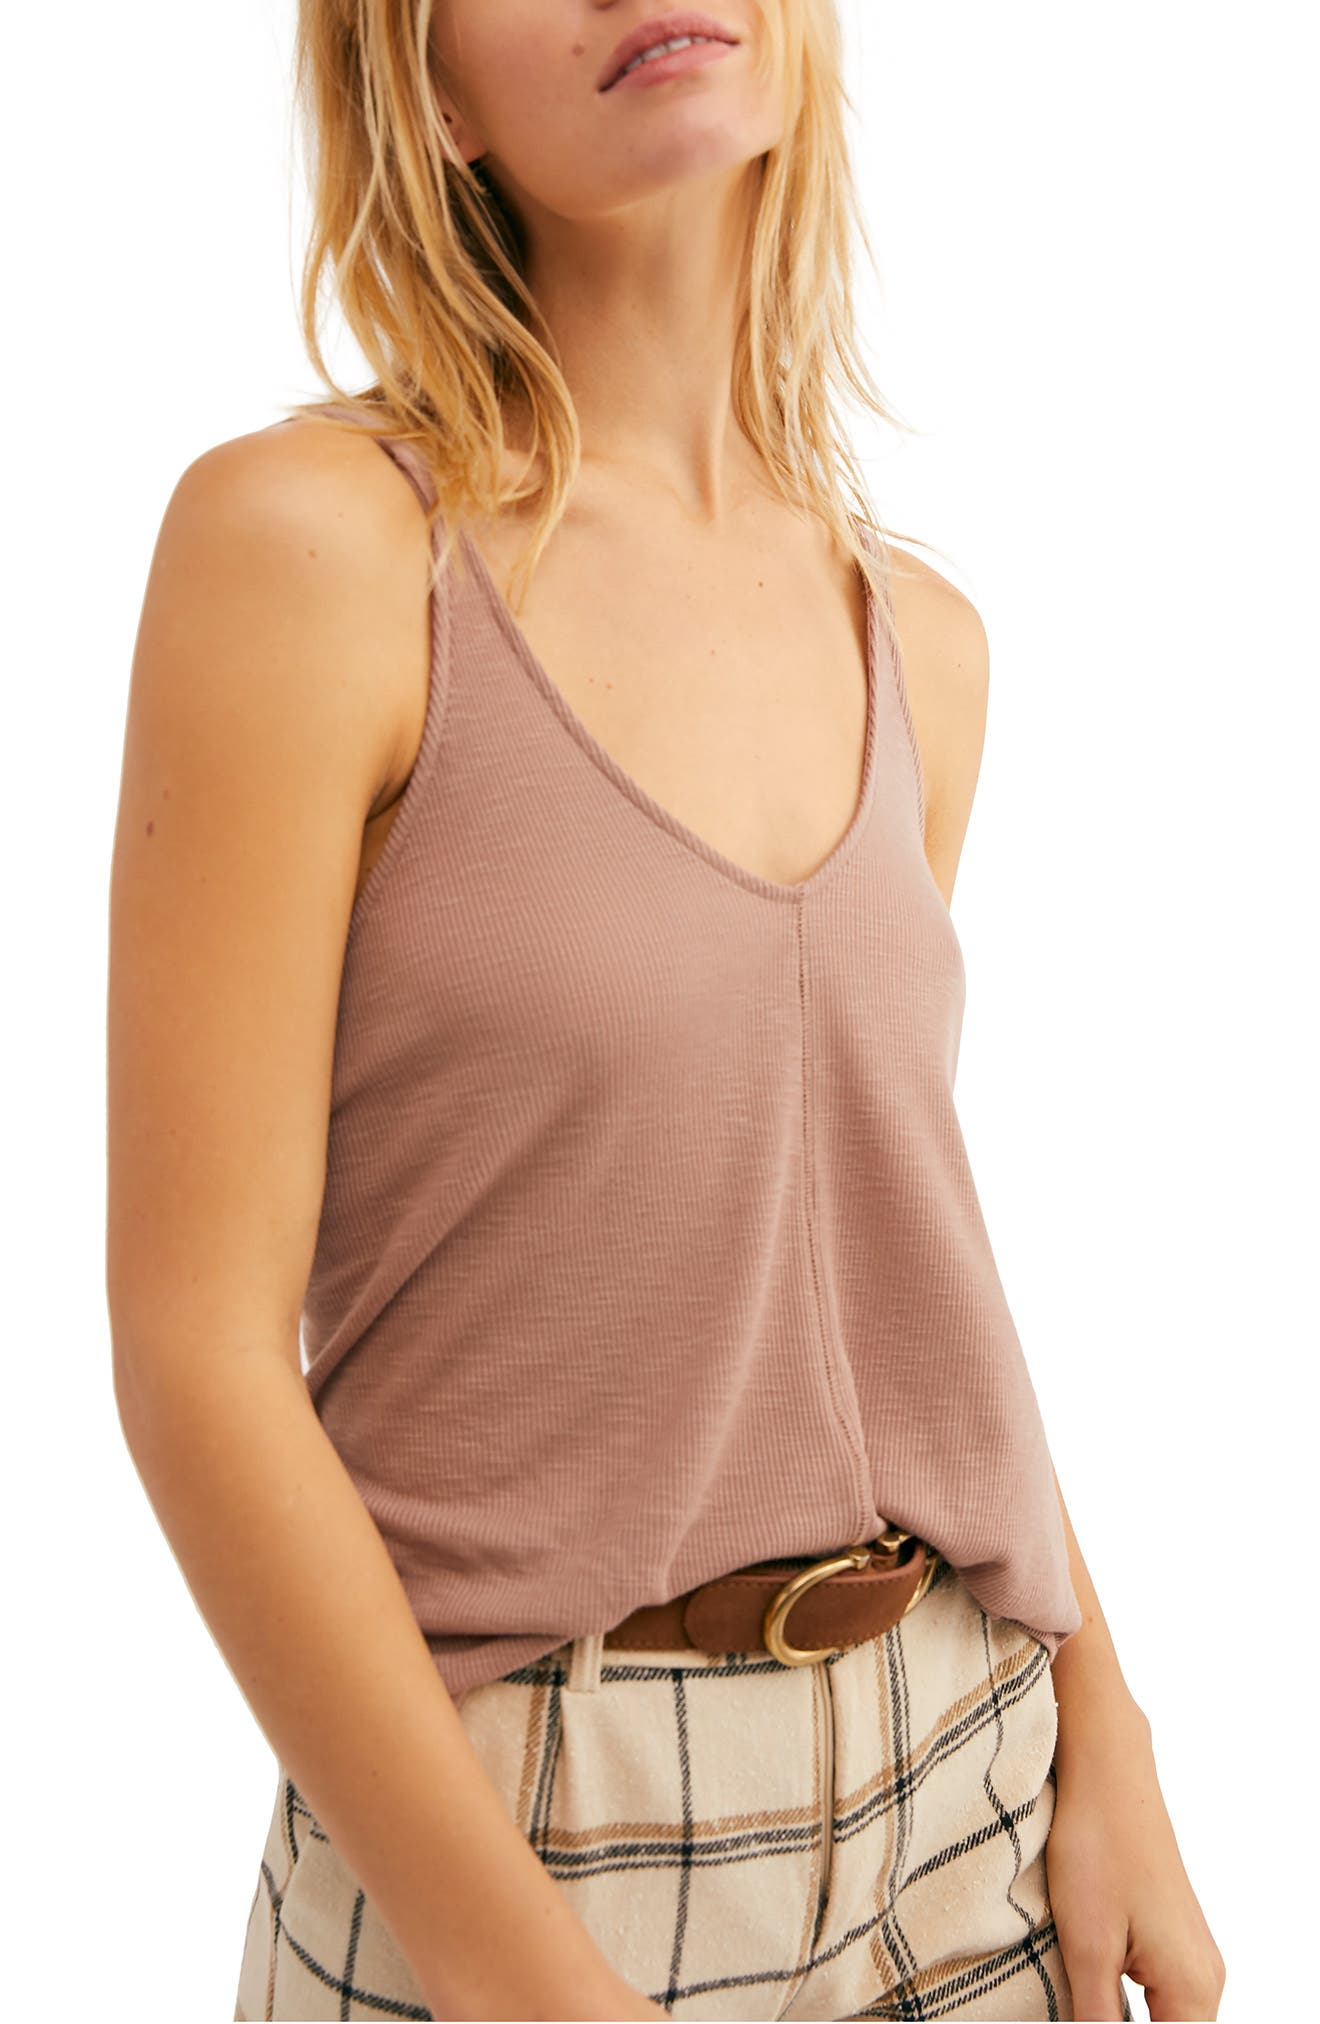 aa6bbc6a7e3 Women's Free People Tops   Nordstrom